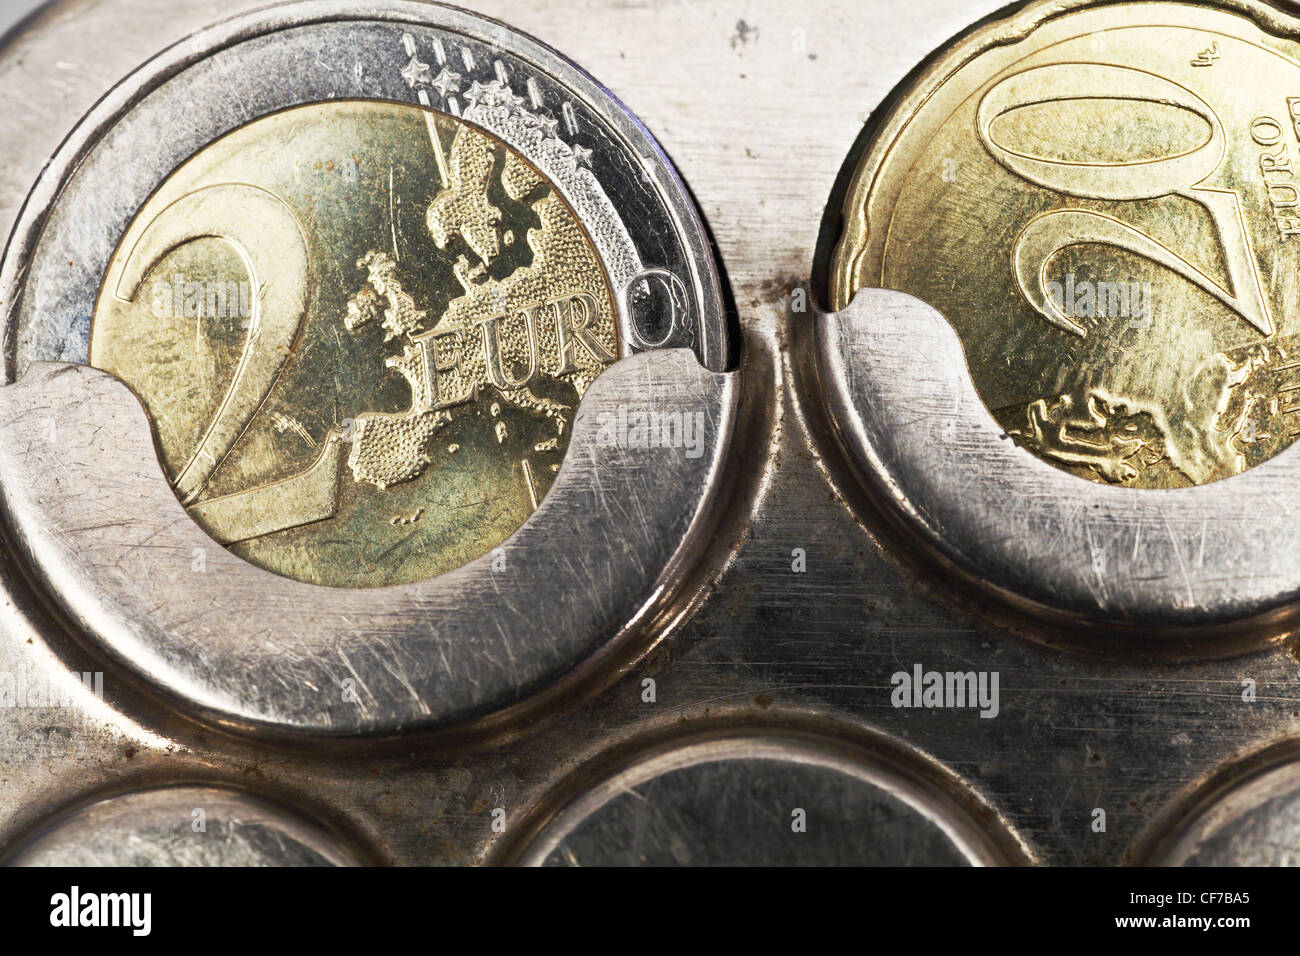 two euro coins and twenty cents in old coin receptacle - Stock Image